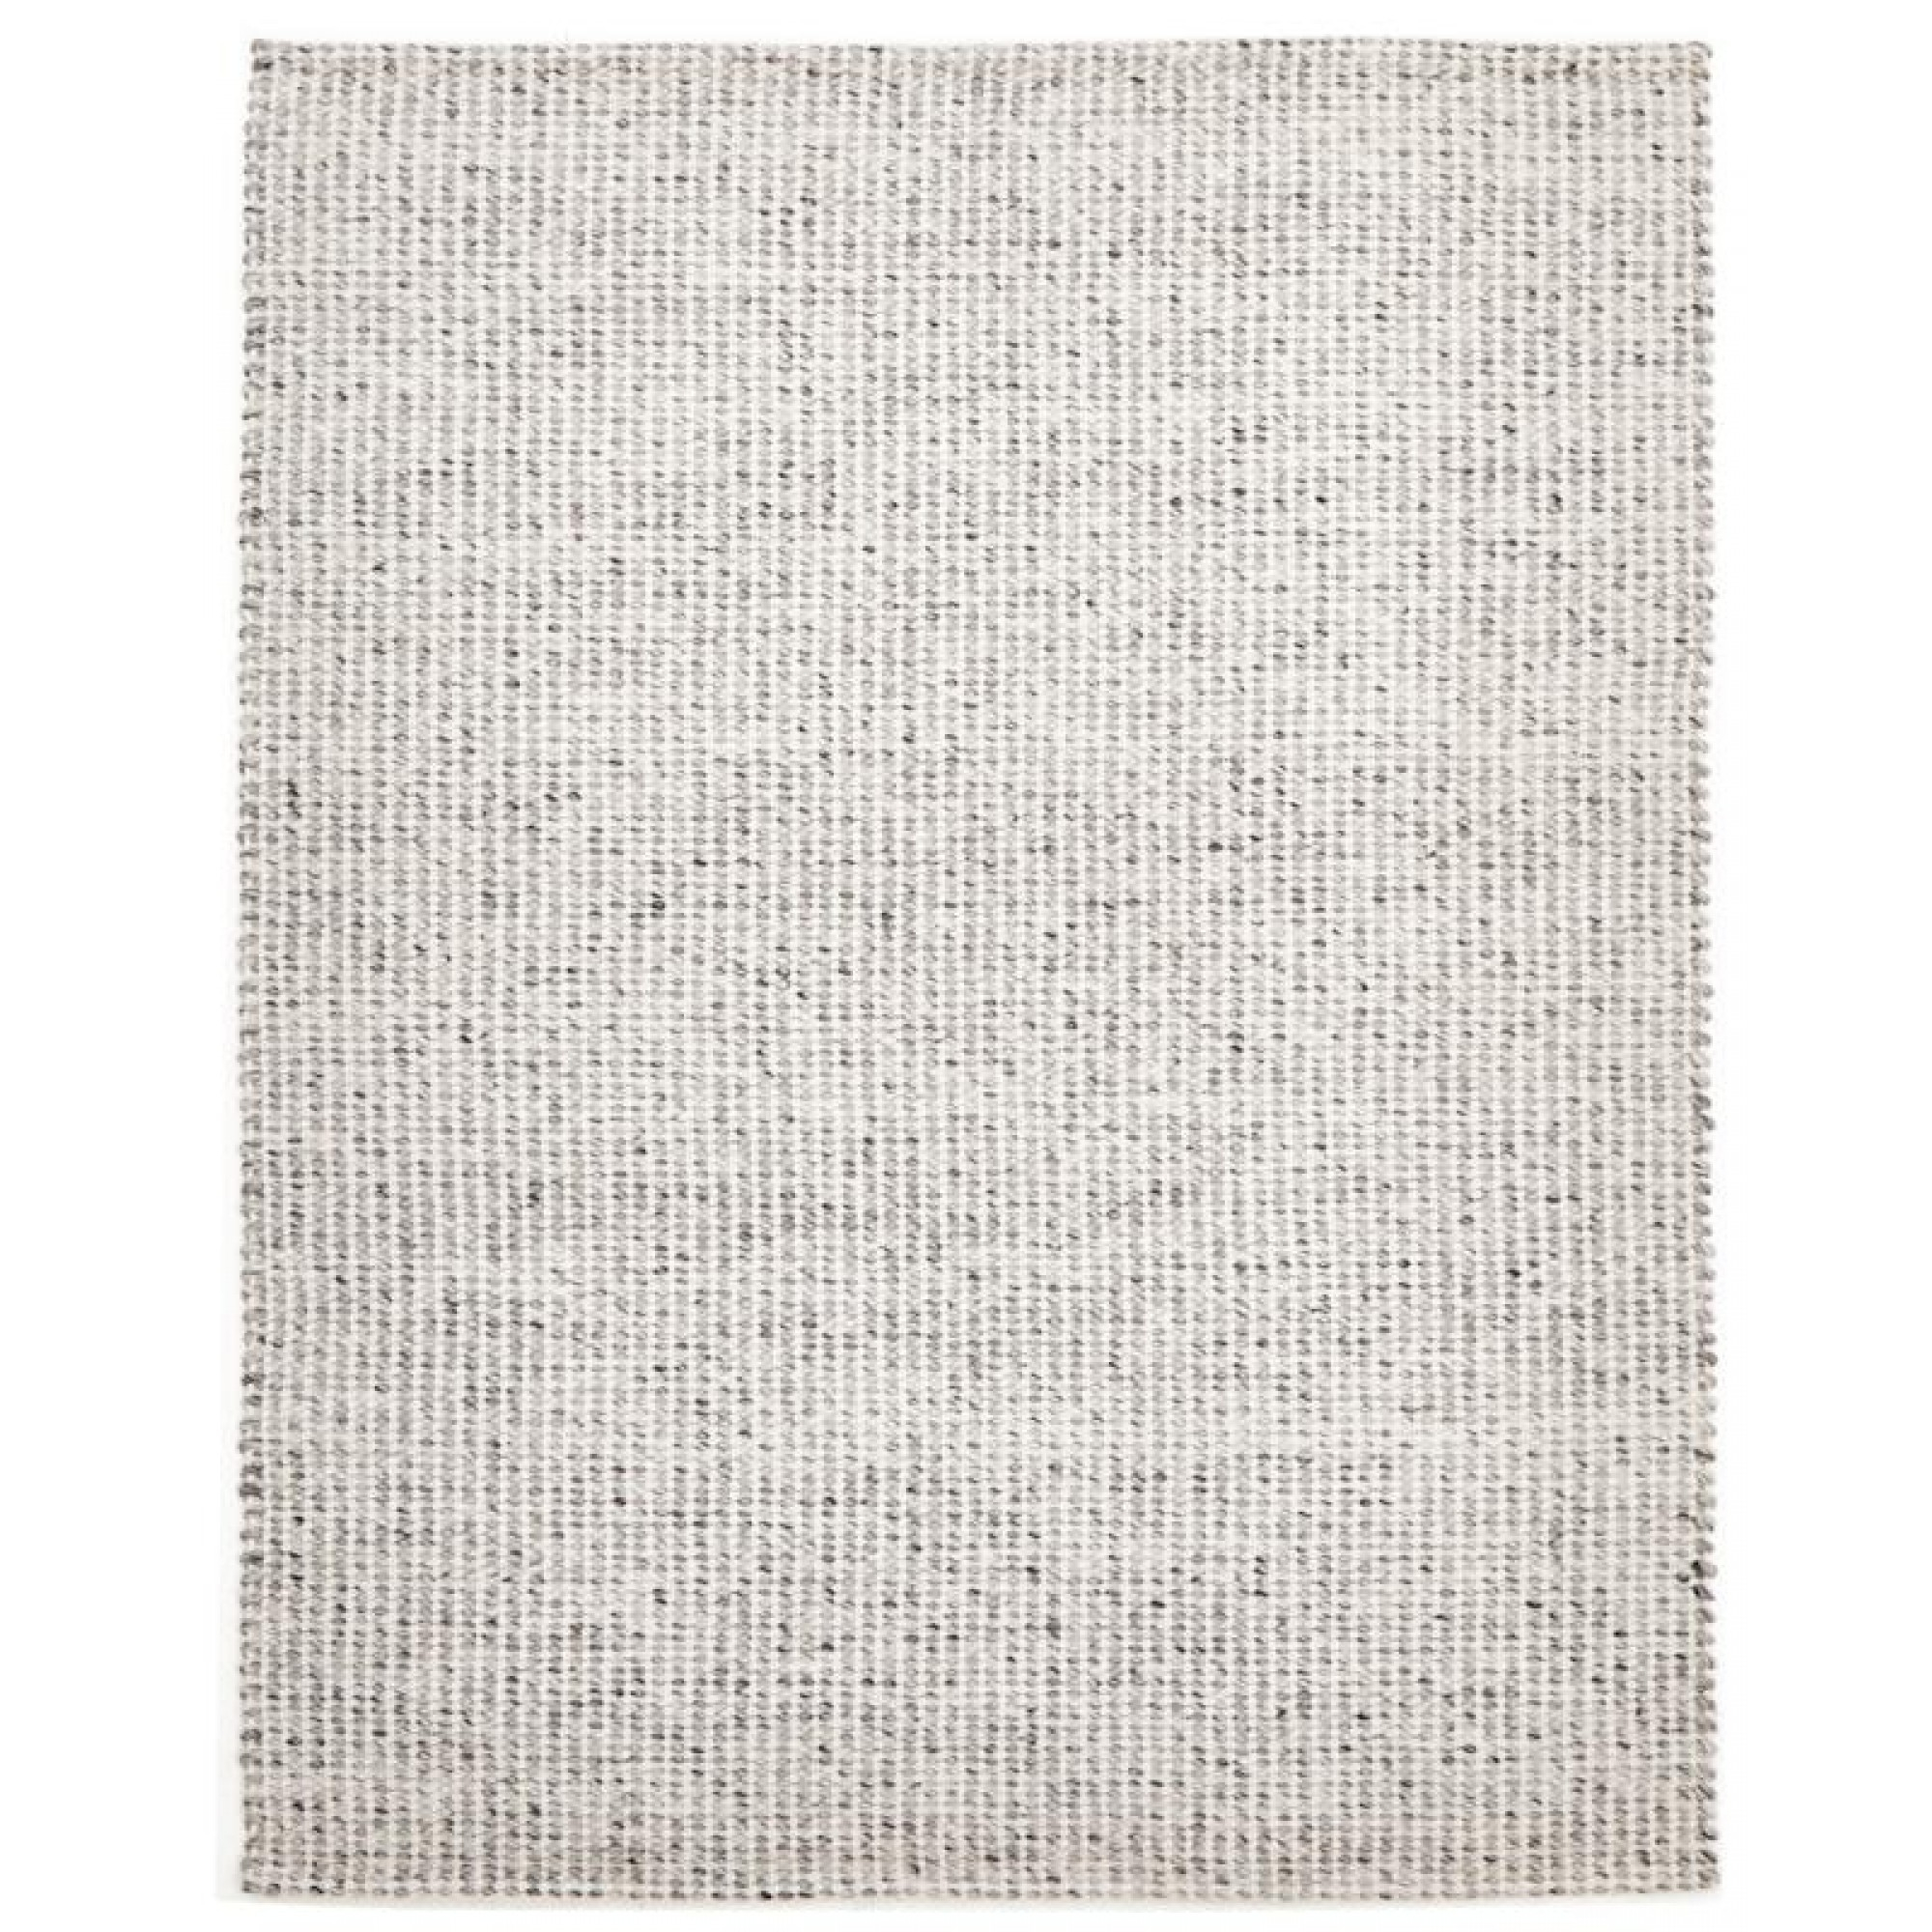 Caylos Felted Wool Floor Area Rug Grey Natural Free Shipping With Regard To Natural Wool Area Rugs (#1 of 15)